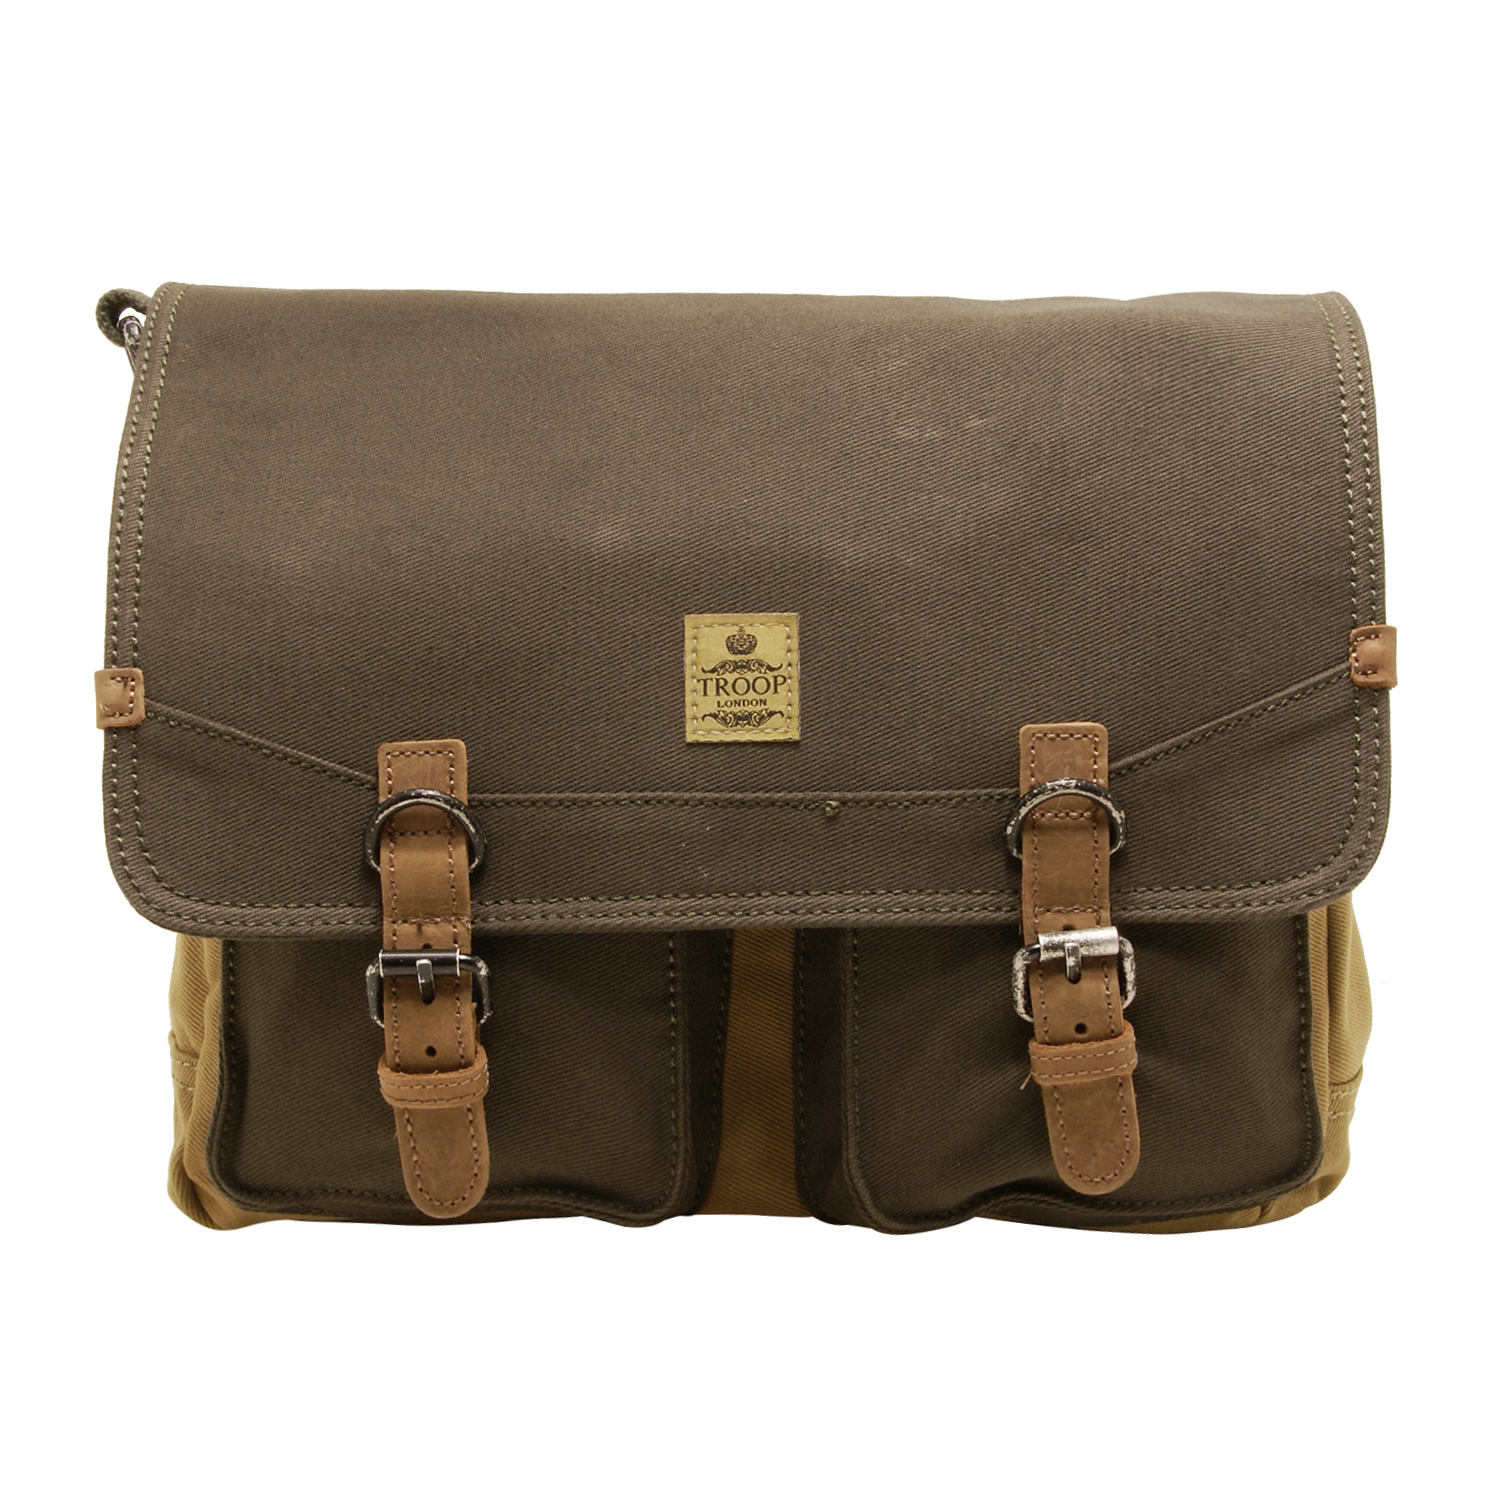 Troop London – Green & Camel Canvas Tablet Friendly Messenger Bag with Leather Trim